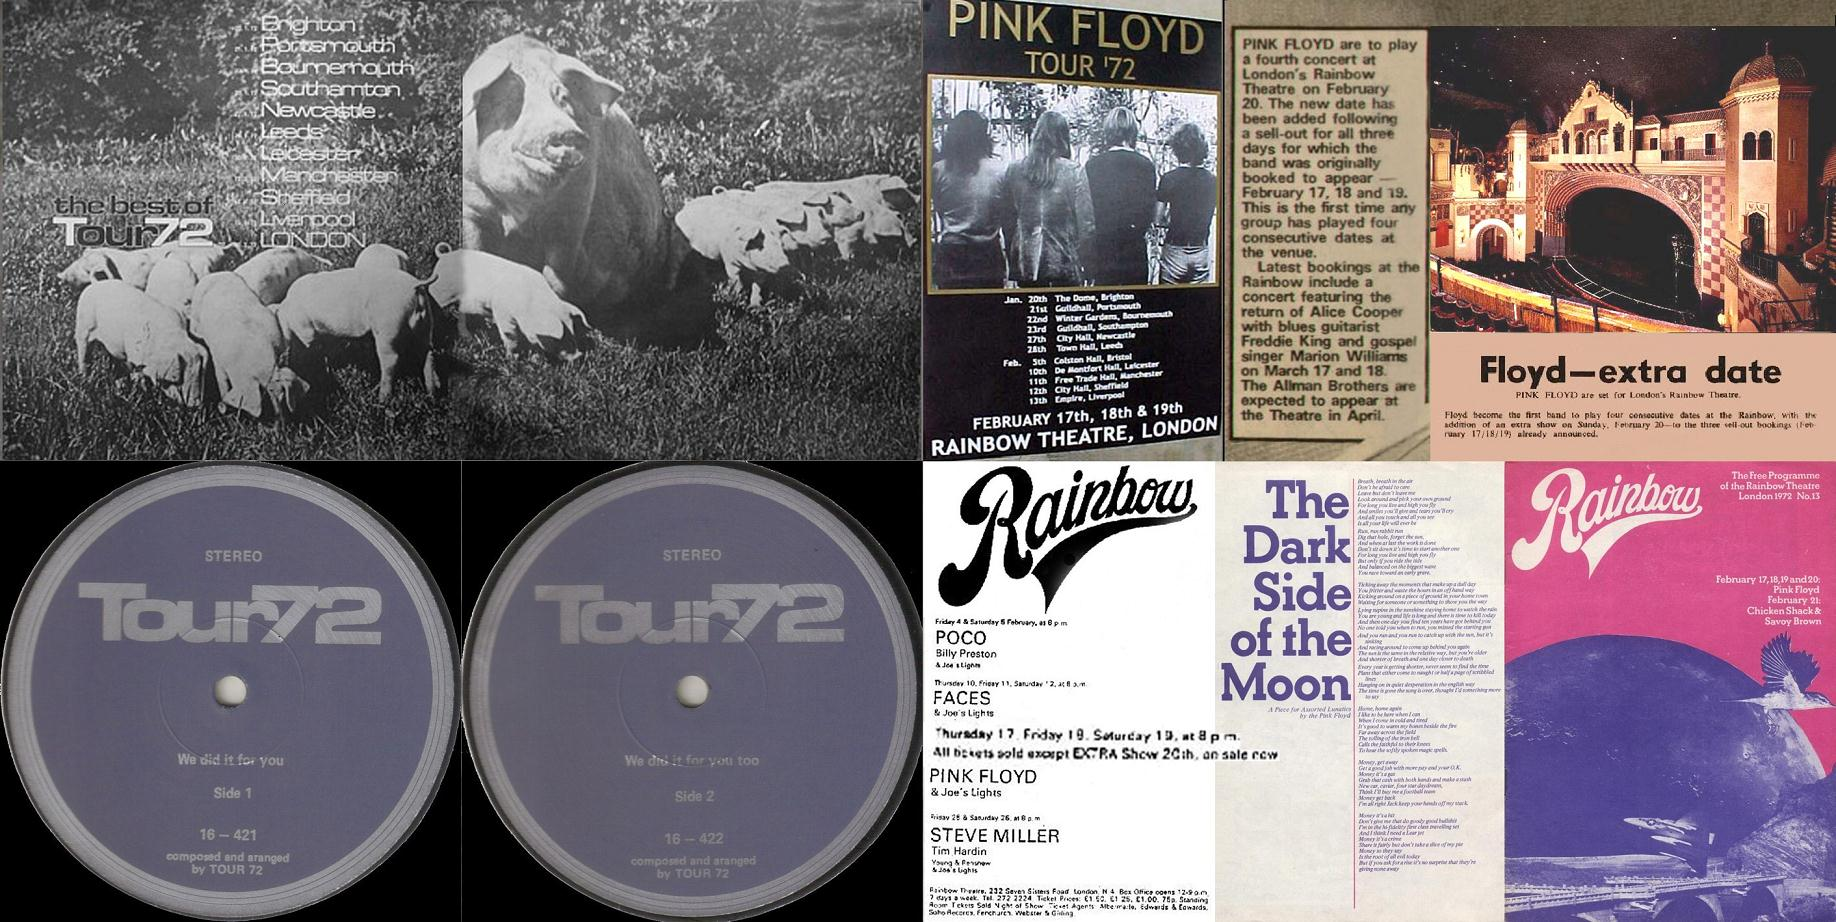 PINK FLOYD – THE BEST OF TOUR 72 – ACE BOOTLEGS